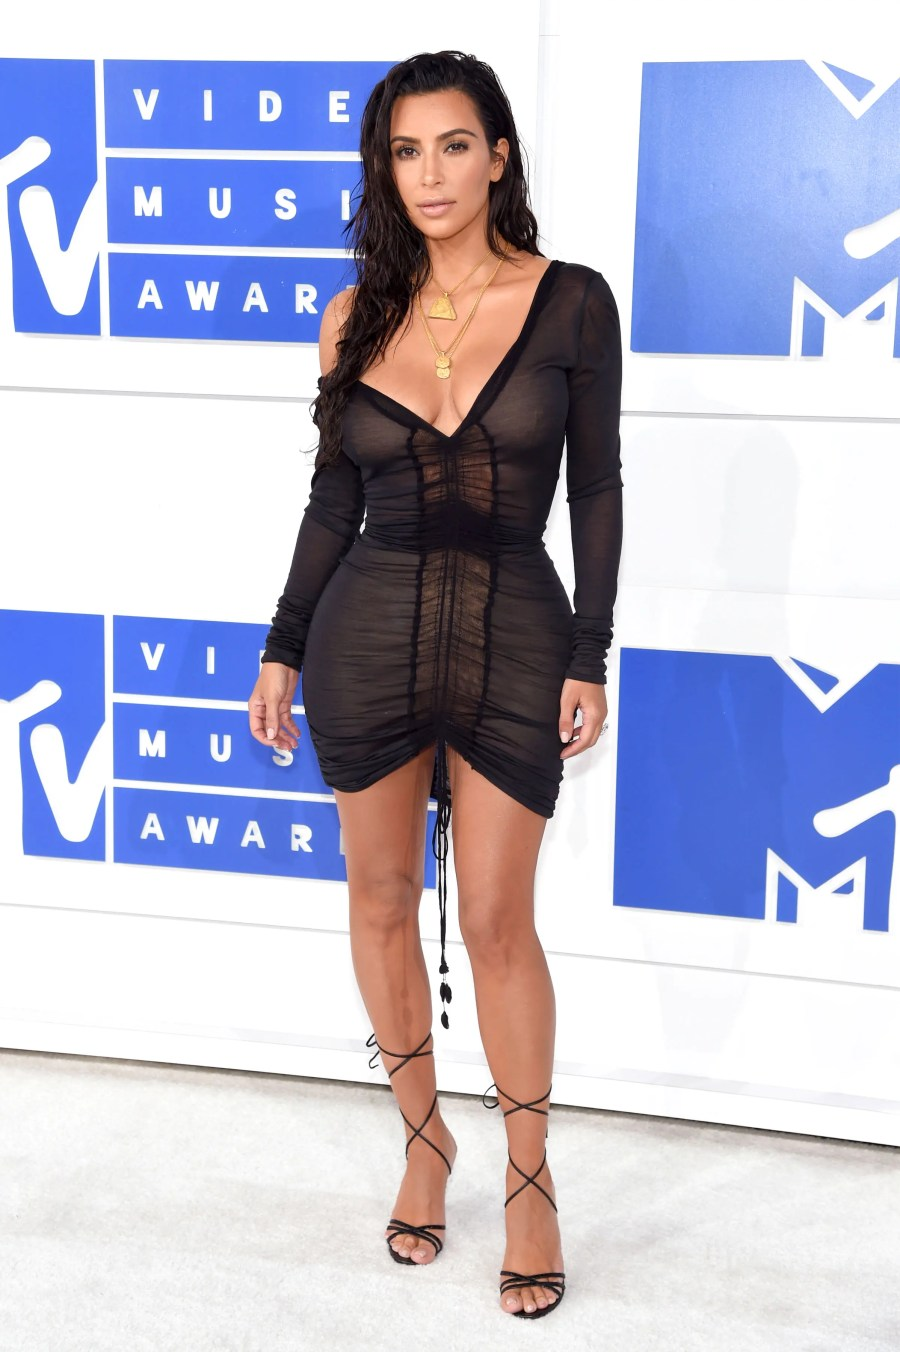 NEW YORK, NY - AUGUST 28: Kim Kardashian West attends the 2016 MTV Video Music Awards at Madison Square Garden on August 28, 2016 in New York City. Jamie McCarthy/Getty Images/AFP